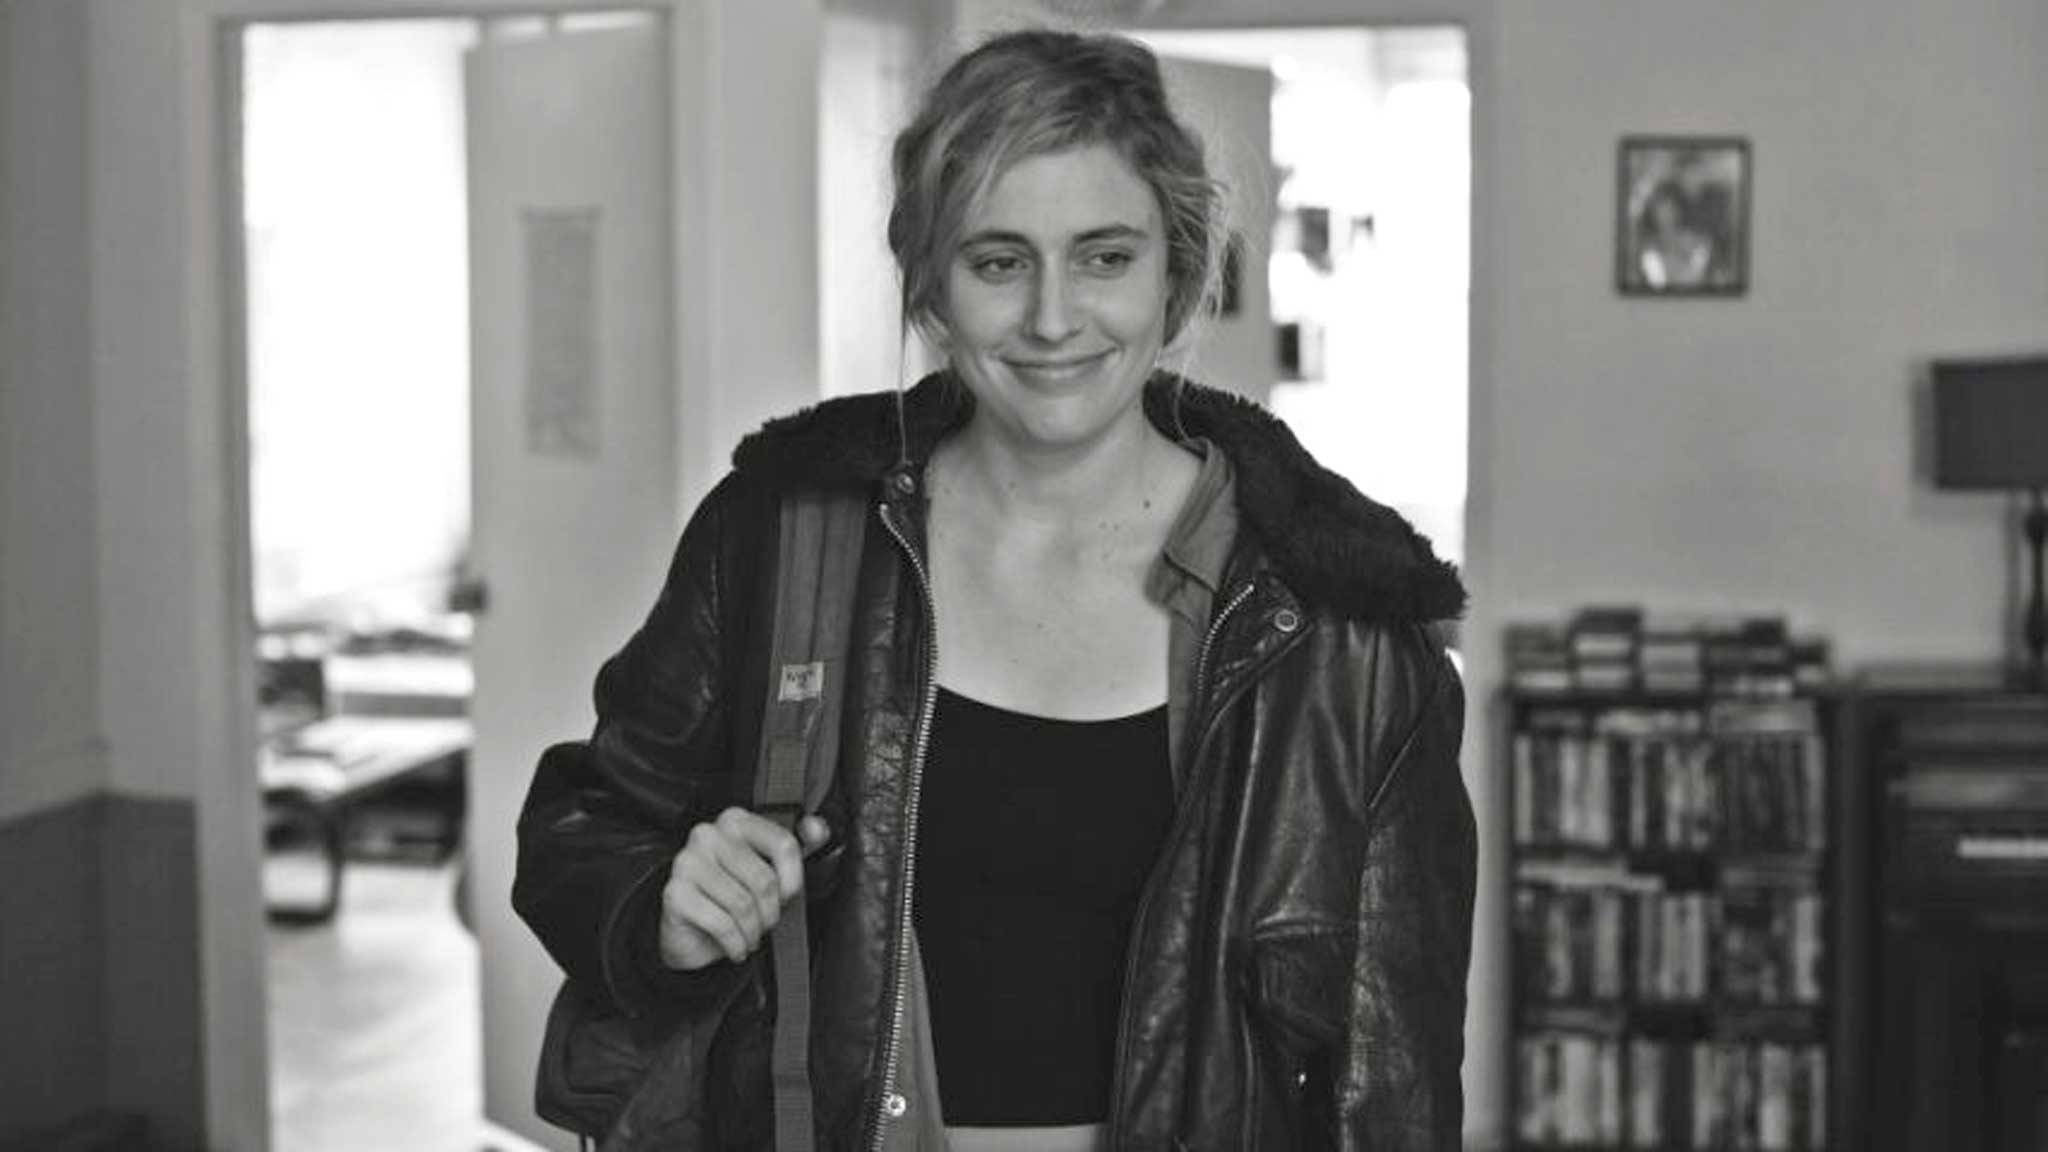 AN25063526Frances-Ha-15Dire.jpg